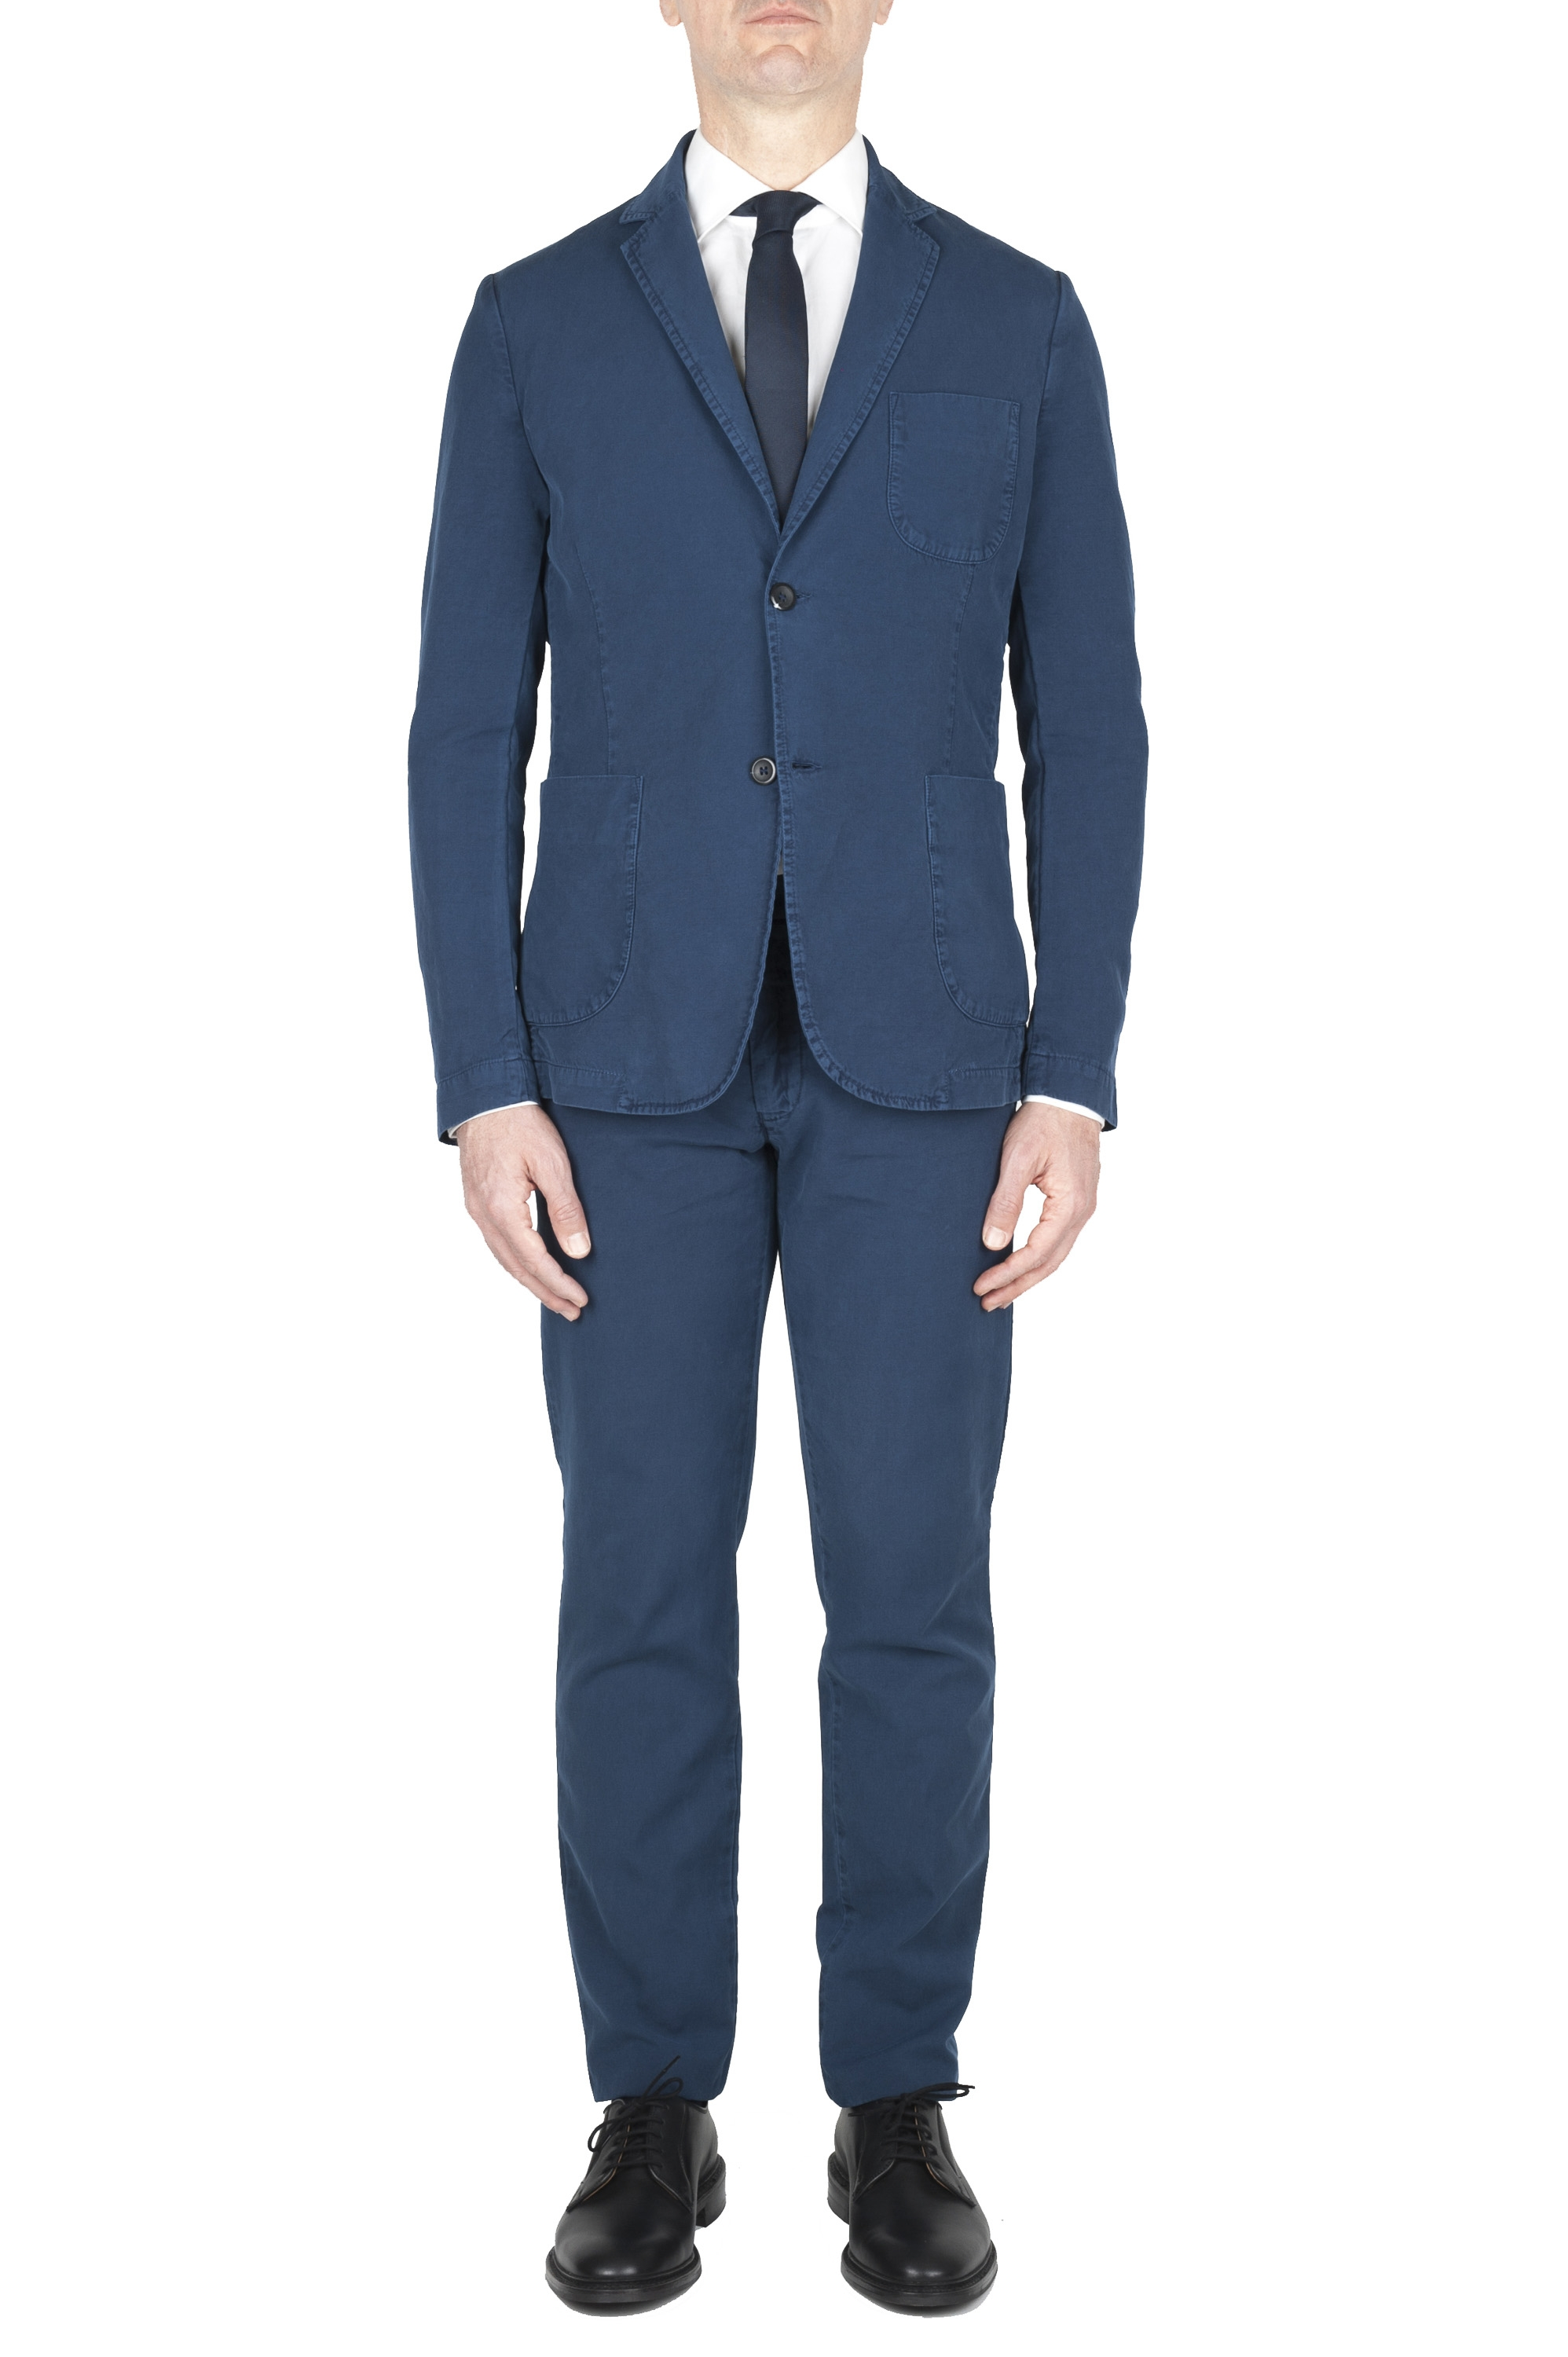 SBU 03051_2020AW Blue cotton sport suit blazer and trouser 01